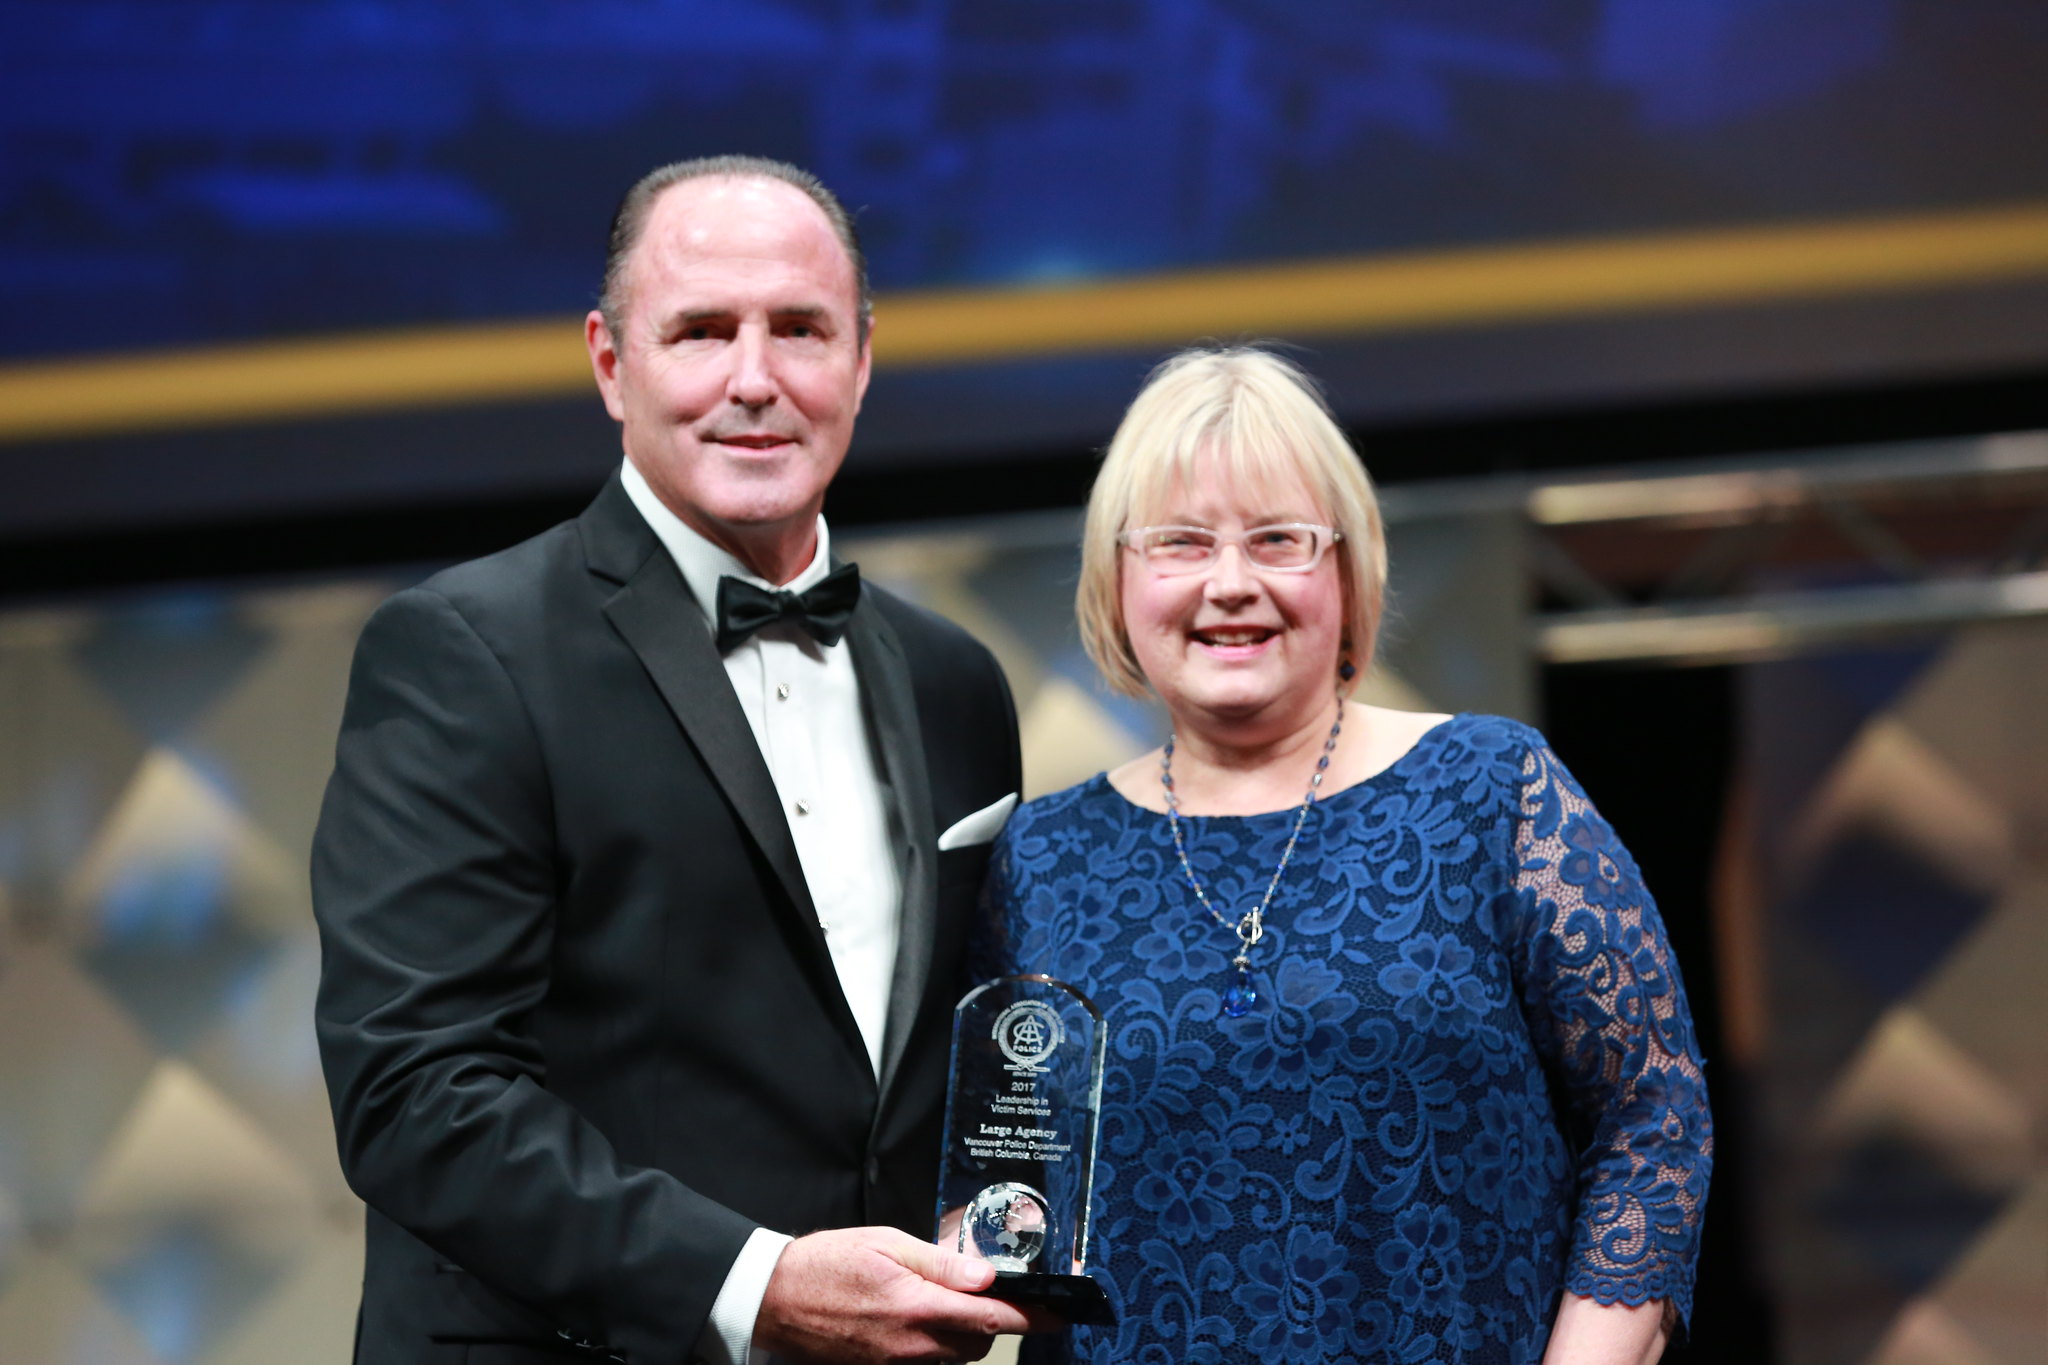 IACP Leadership in Victim Services Award (Large) - Vancouver